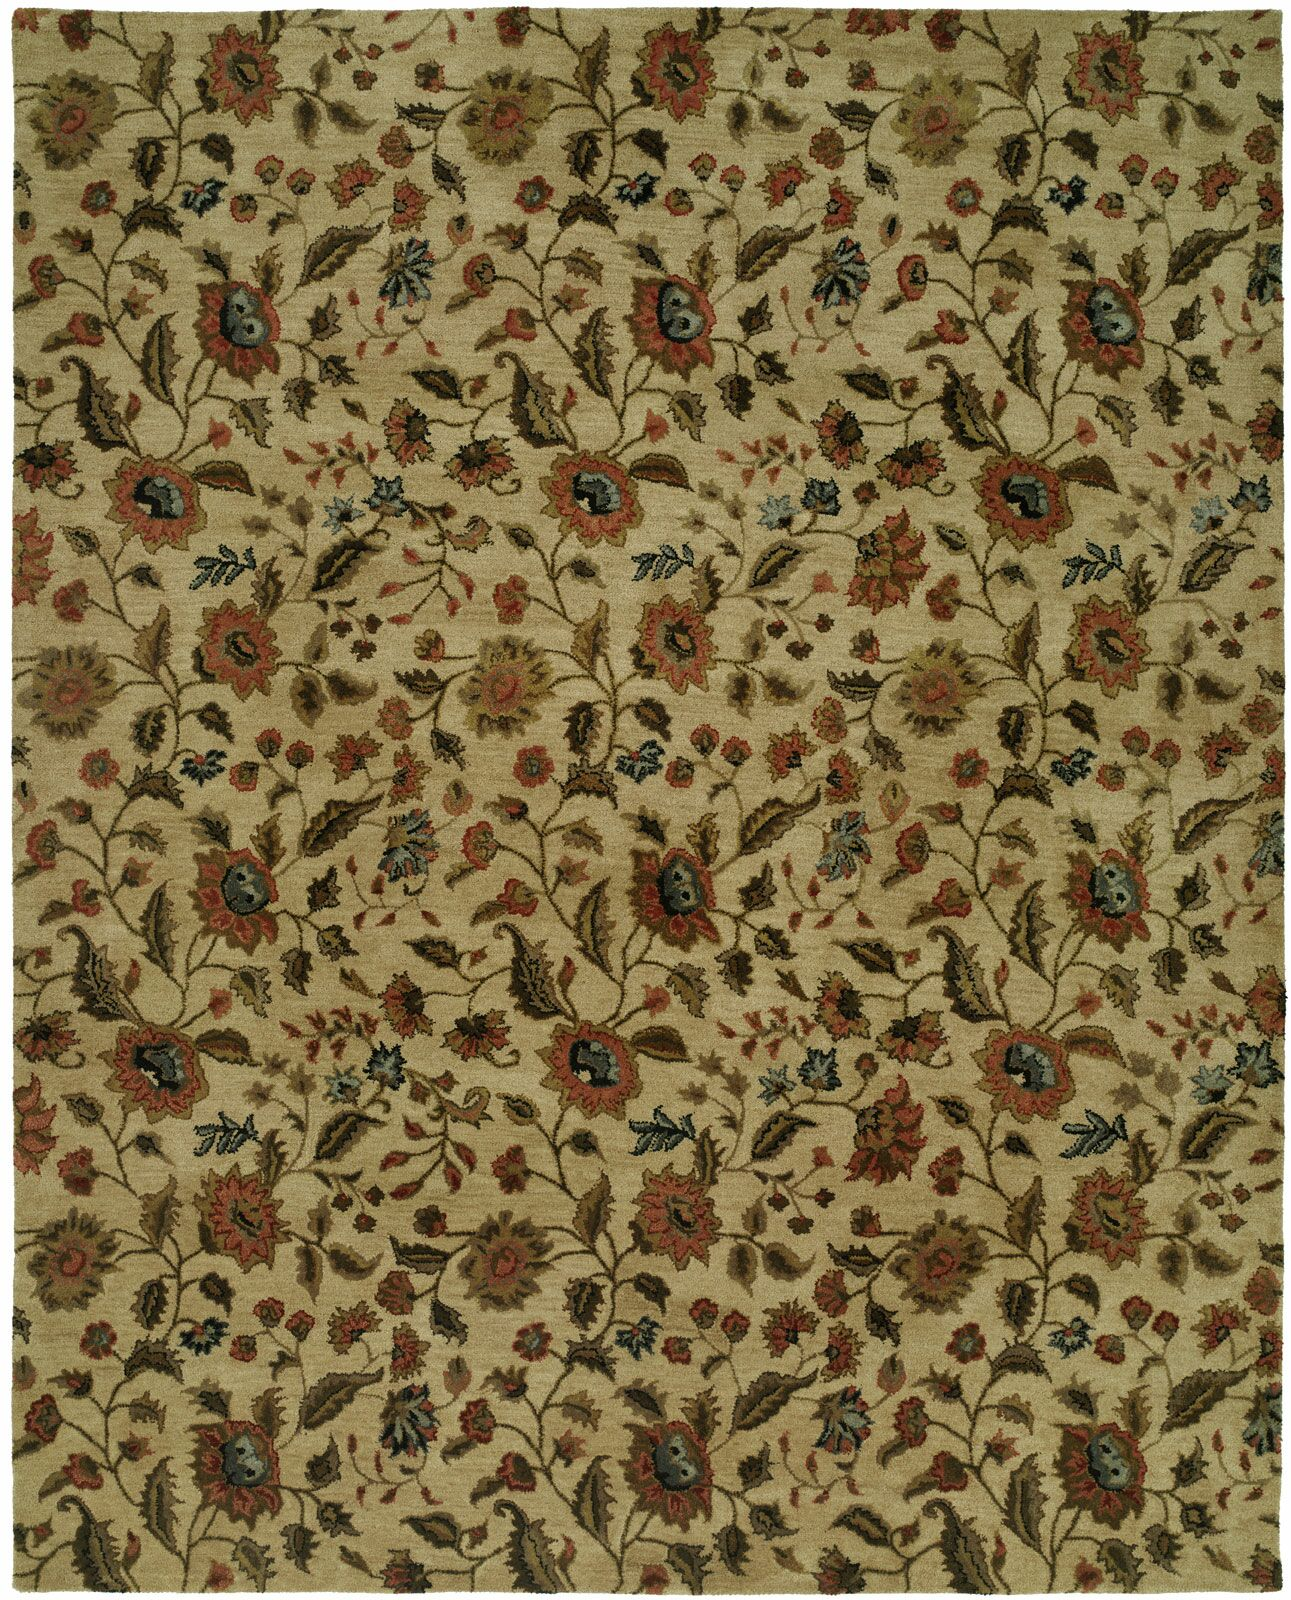 Hand-Tufted Beige Area Rug Rug Size: 6' x 9'